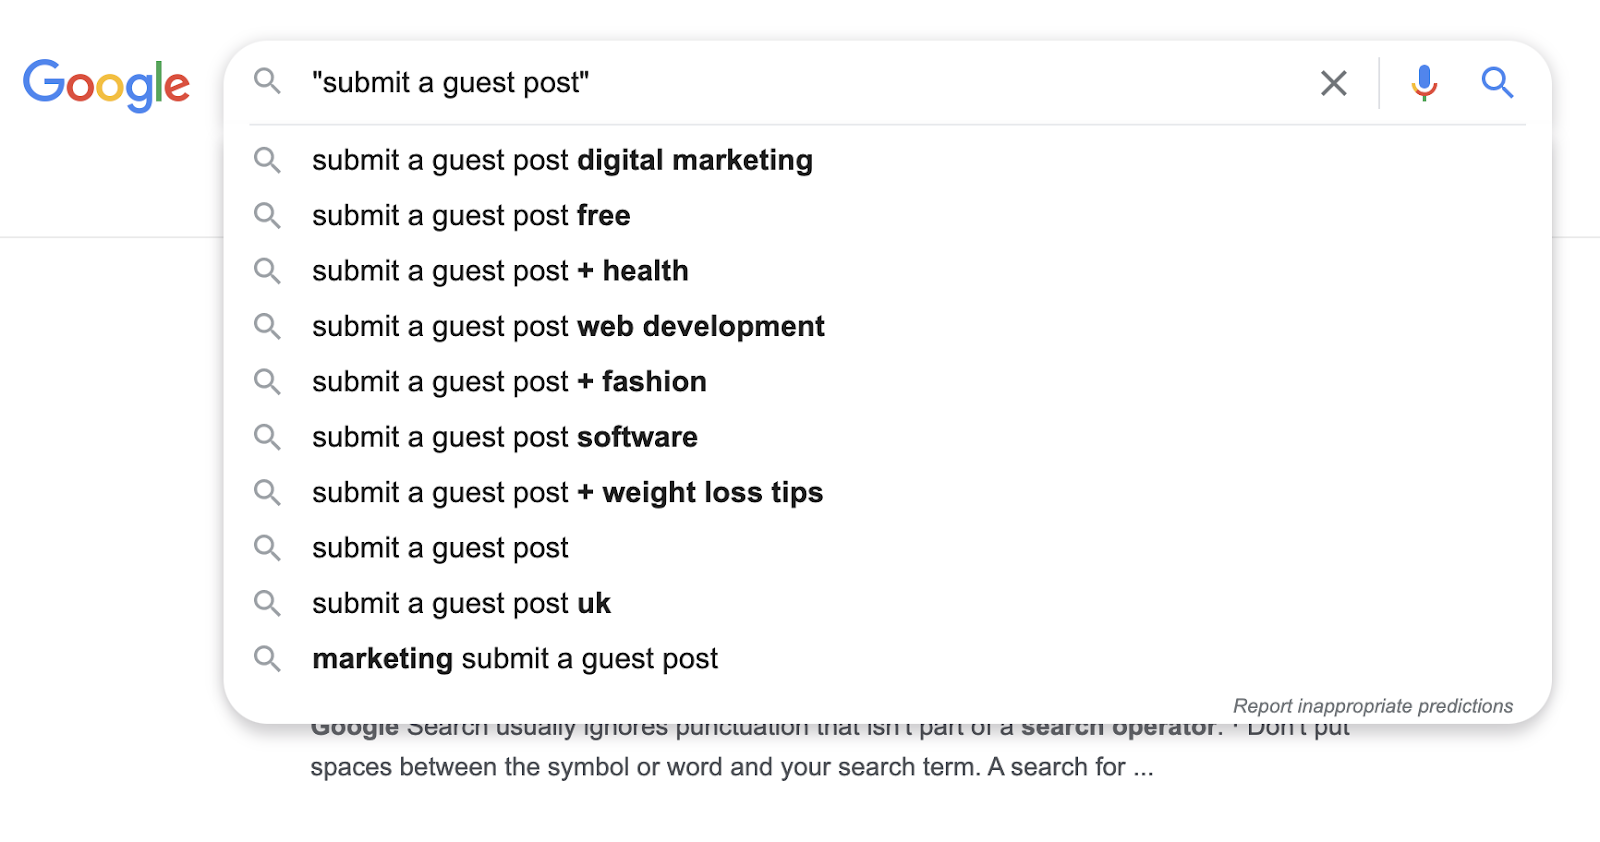 Google search on submitting a guest post